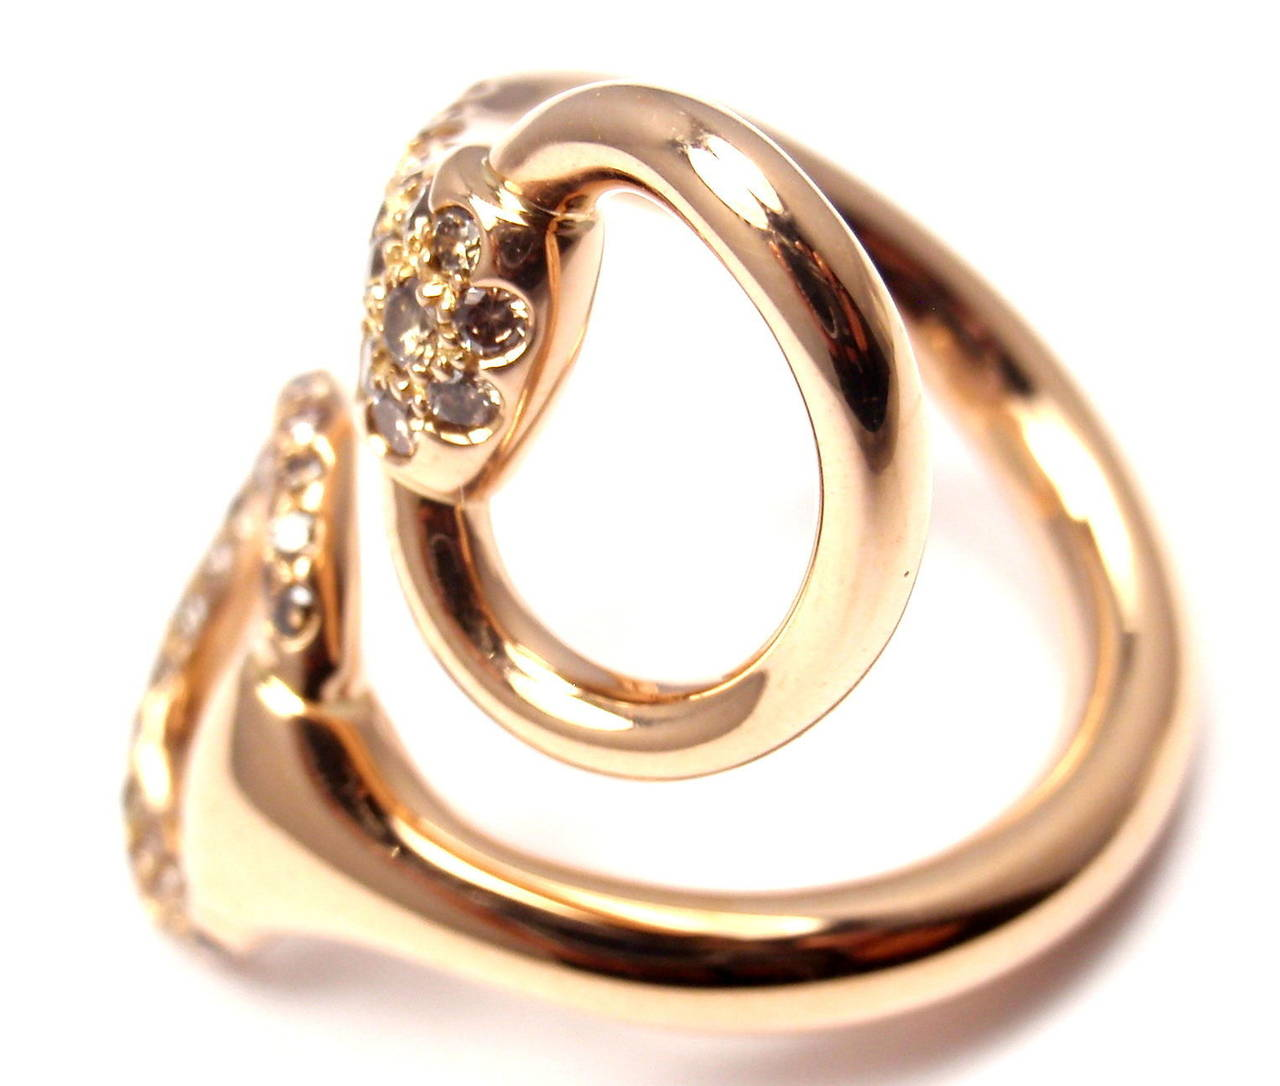 Hermes Nausicaa Croisee Diamond Large Rose Gold Ring In As new Condition For Sale In Southampton, PA